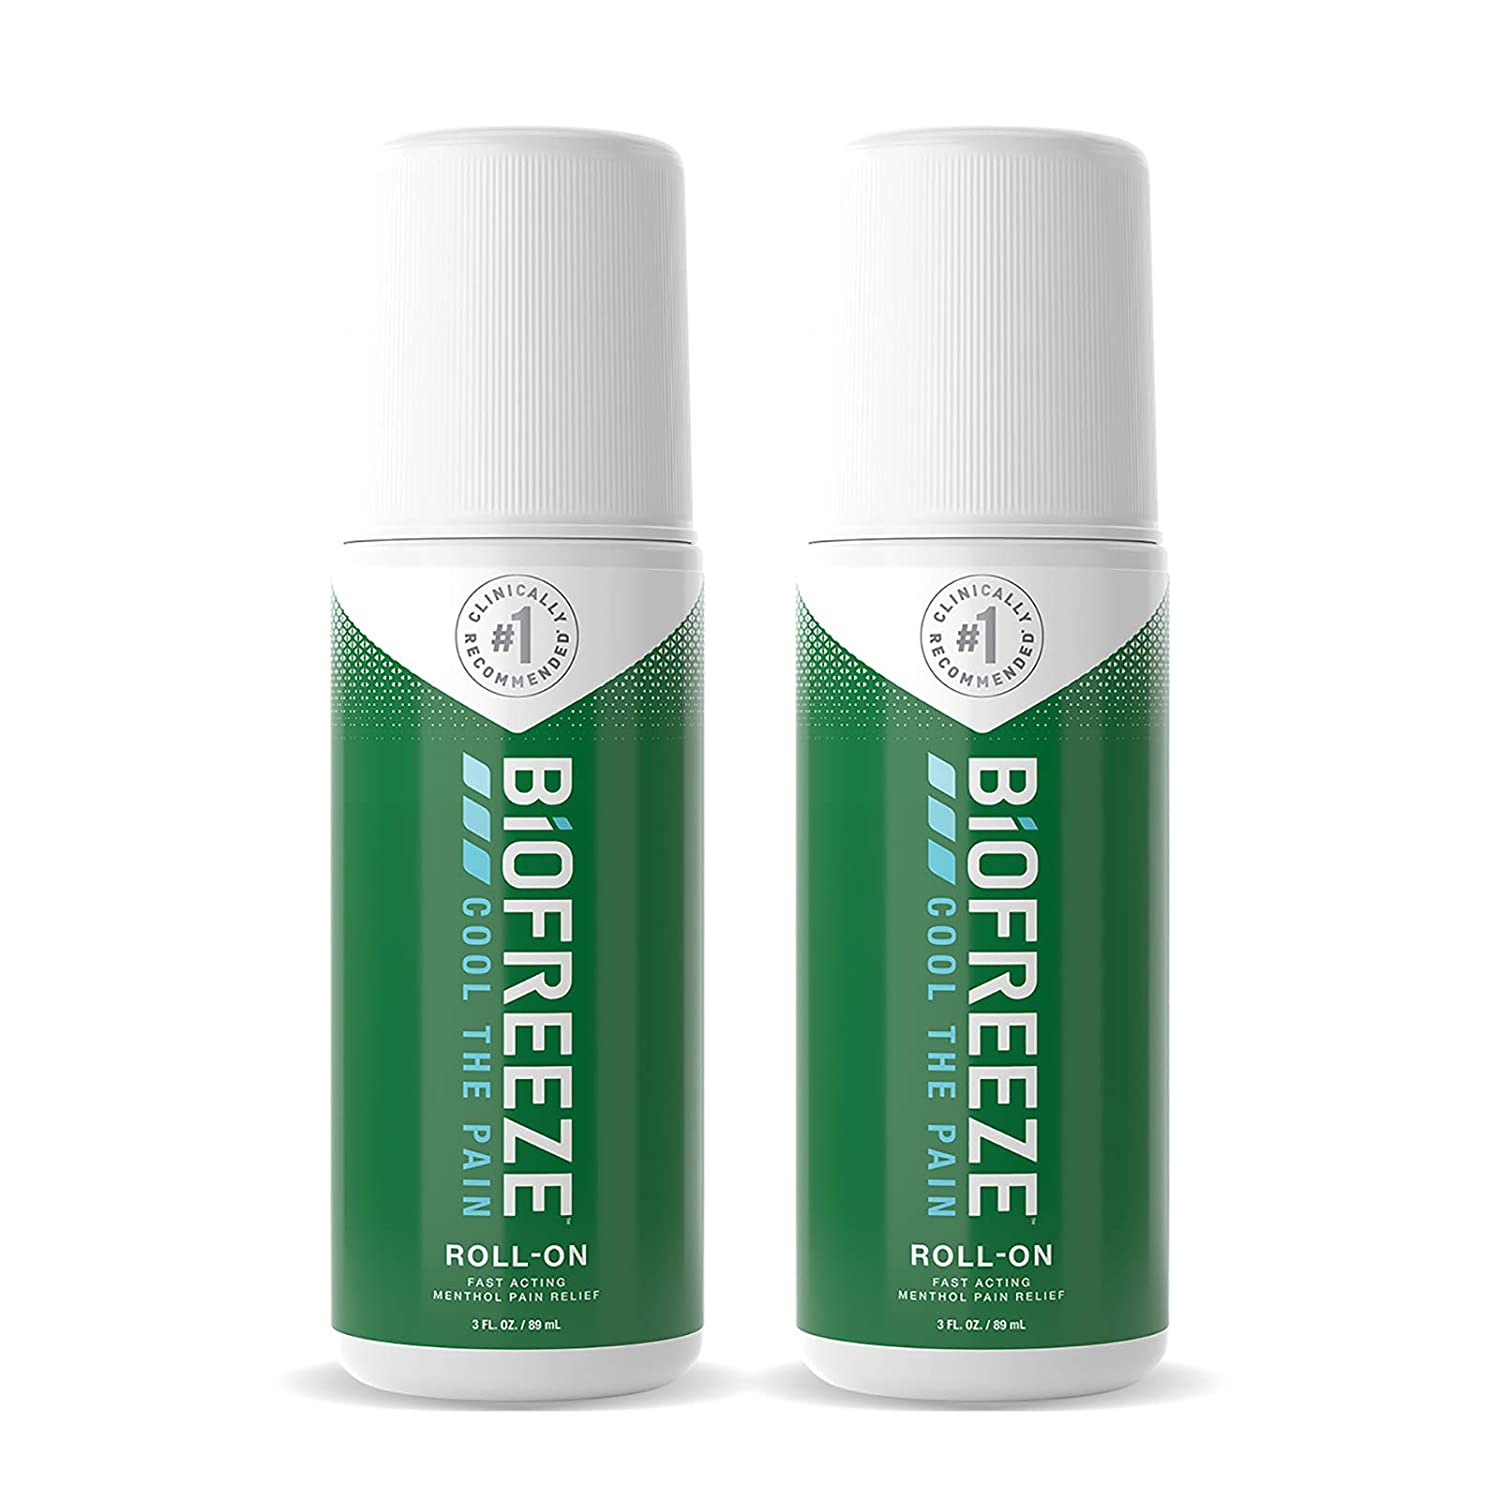 Biofreeze Pain Relief Roll-On, 3 oz. Roll-On, Fast Acting, Long Lasting, & Powerful Topical Pain Reliever, Pack of 2 (Packaging May Vary)